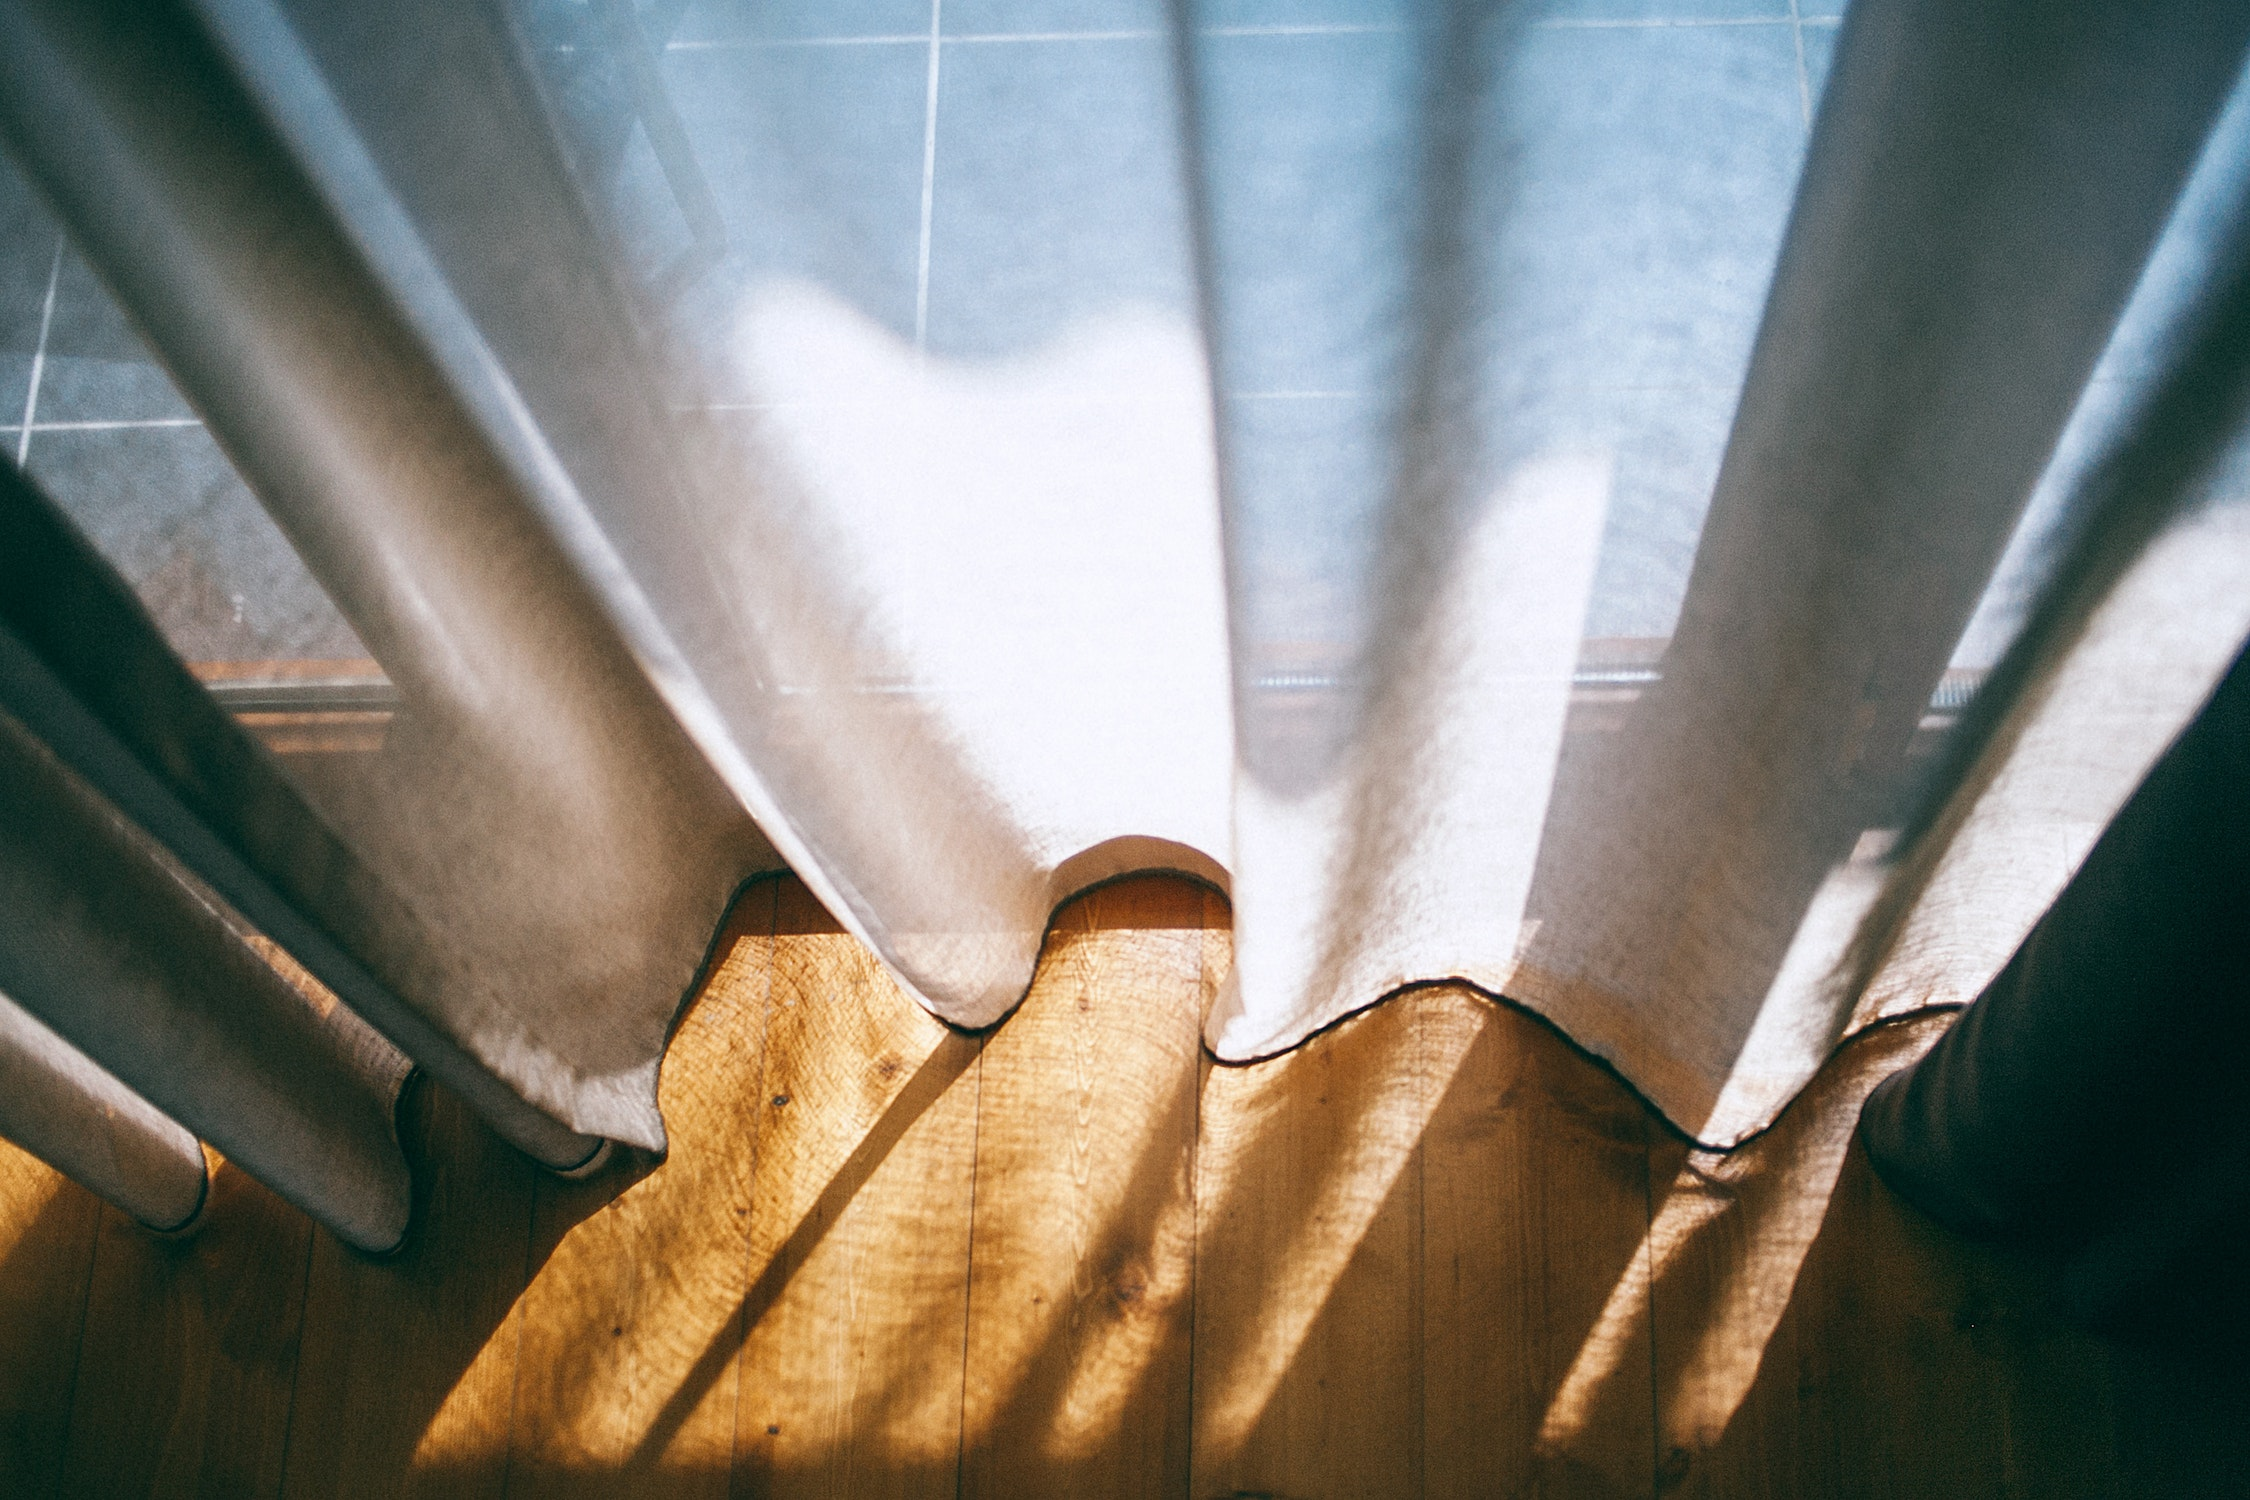 Curtains in the sunlight